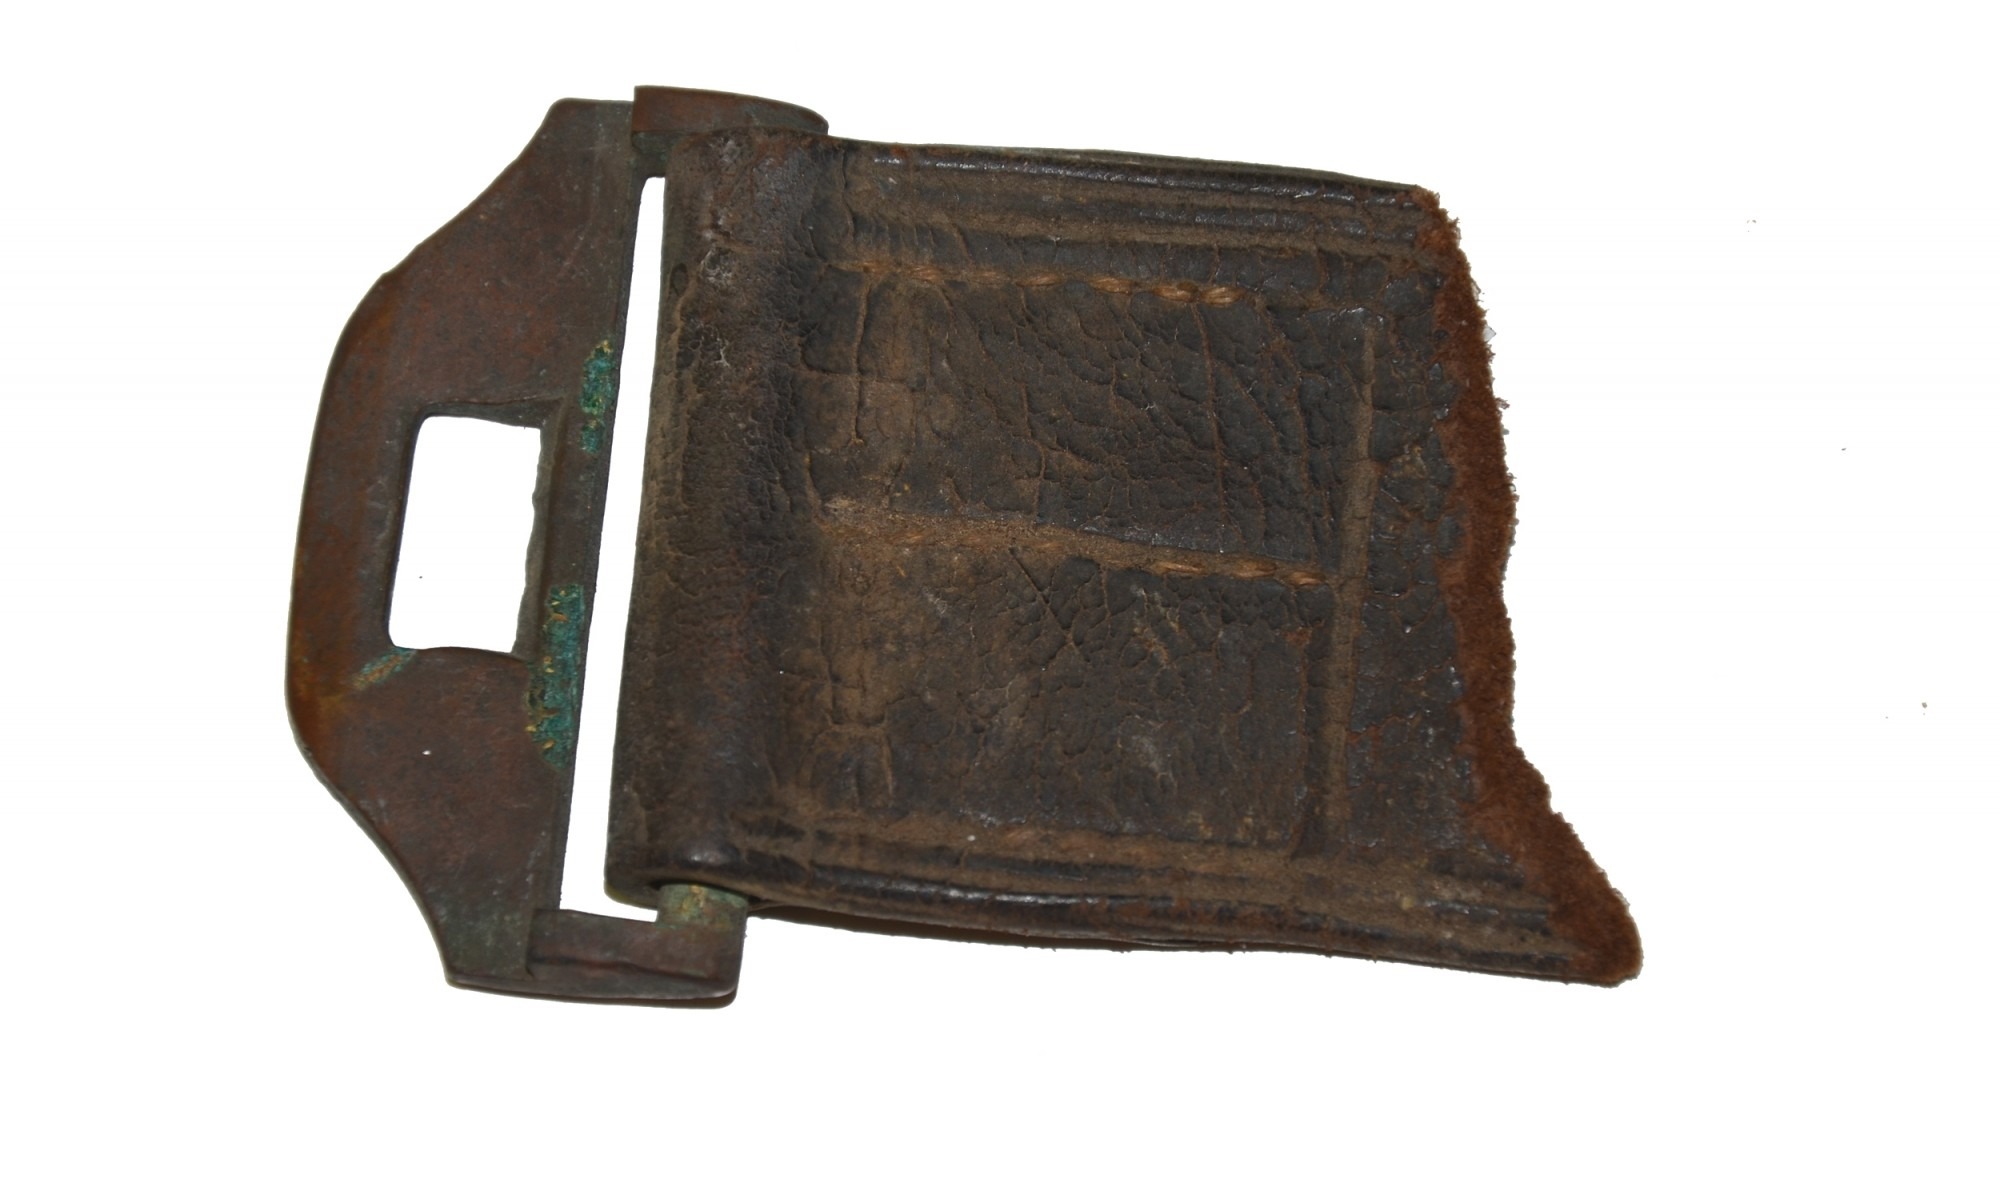 PIECE OF US MODEL 1851 BELT, RECOVERED AT GETTYSBURG